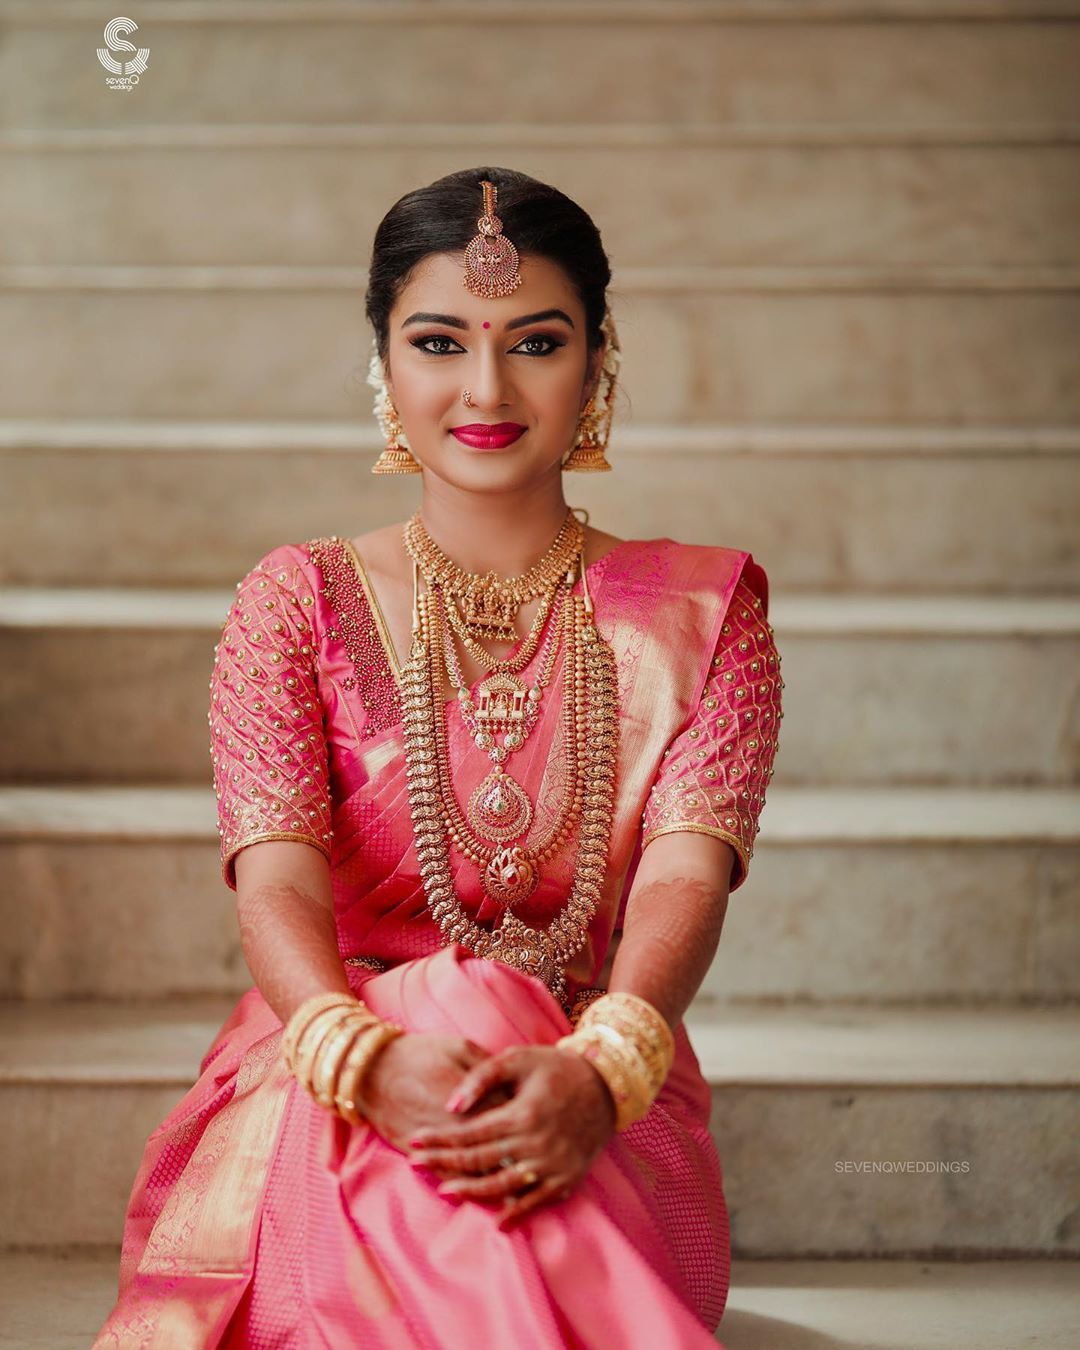 "Photo of SevenQ Weddings on Instagram: ""#candidweddingphotography #instaweddings #weddingpic #bestweddingphotography #weddingpic #bestweddingphotography #bride #brideofindia…"""